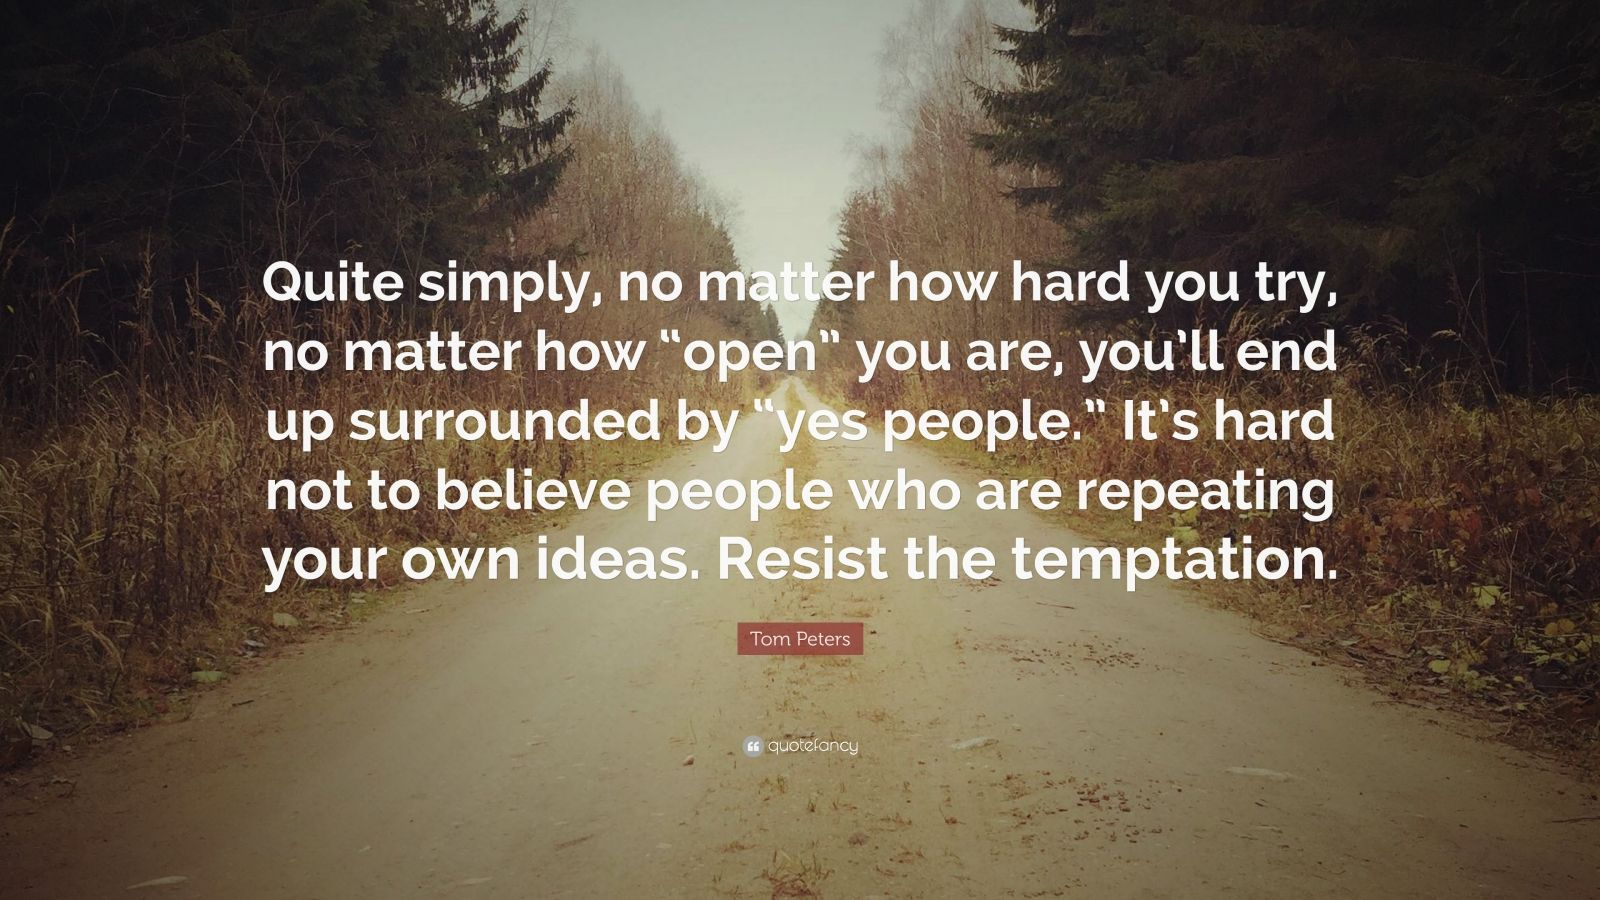 """Tom Peters Quote: """"Quite simply, no matter how hard you try, no matter how """"open"""" you are, you'll end up surrounded by """"yes people."""" It's hard not to believe people who are repeating your own ideas. Resist the temptation."""""""